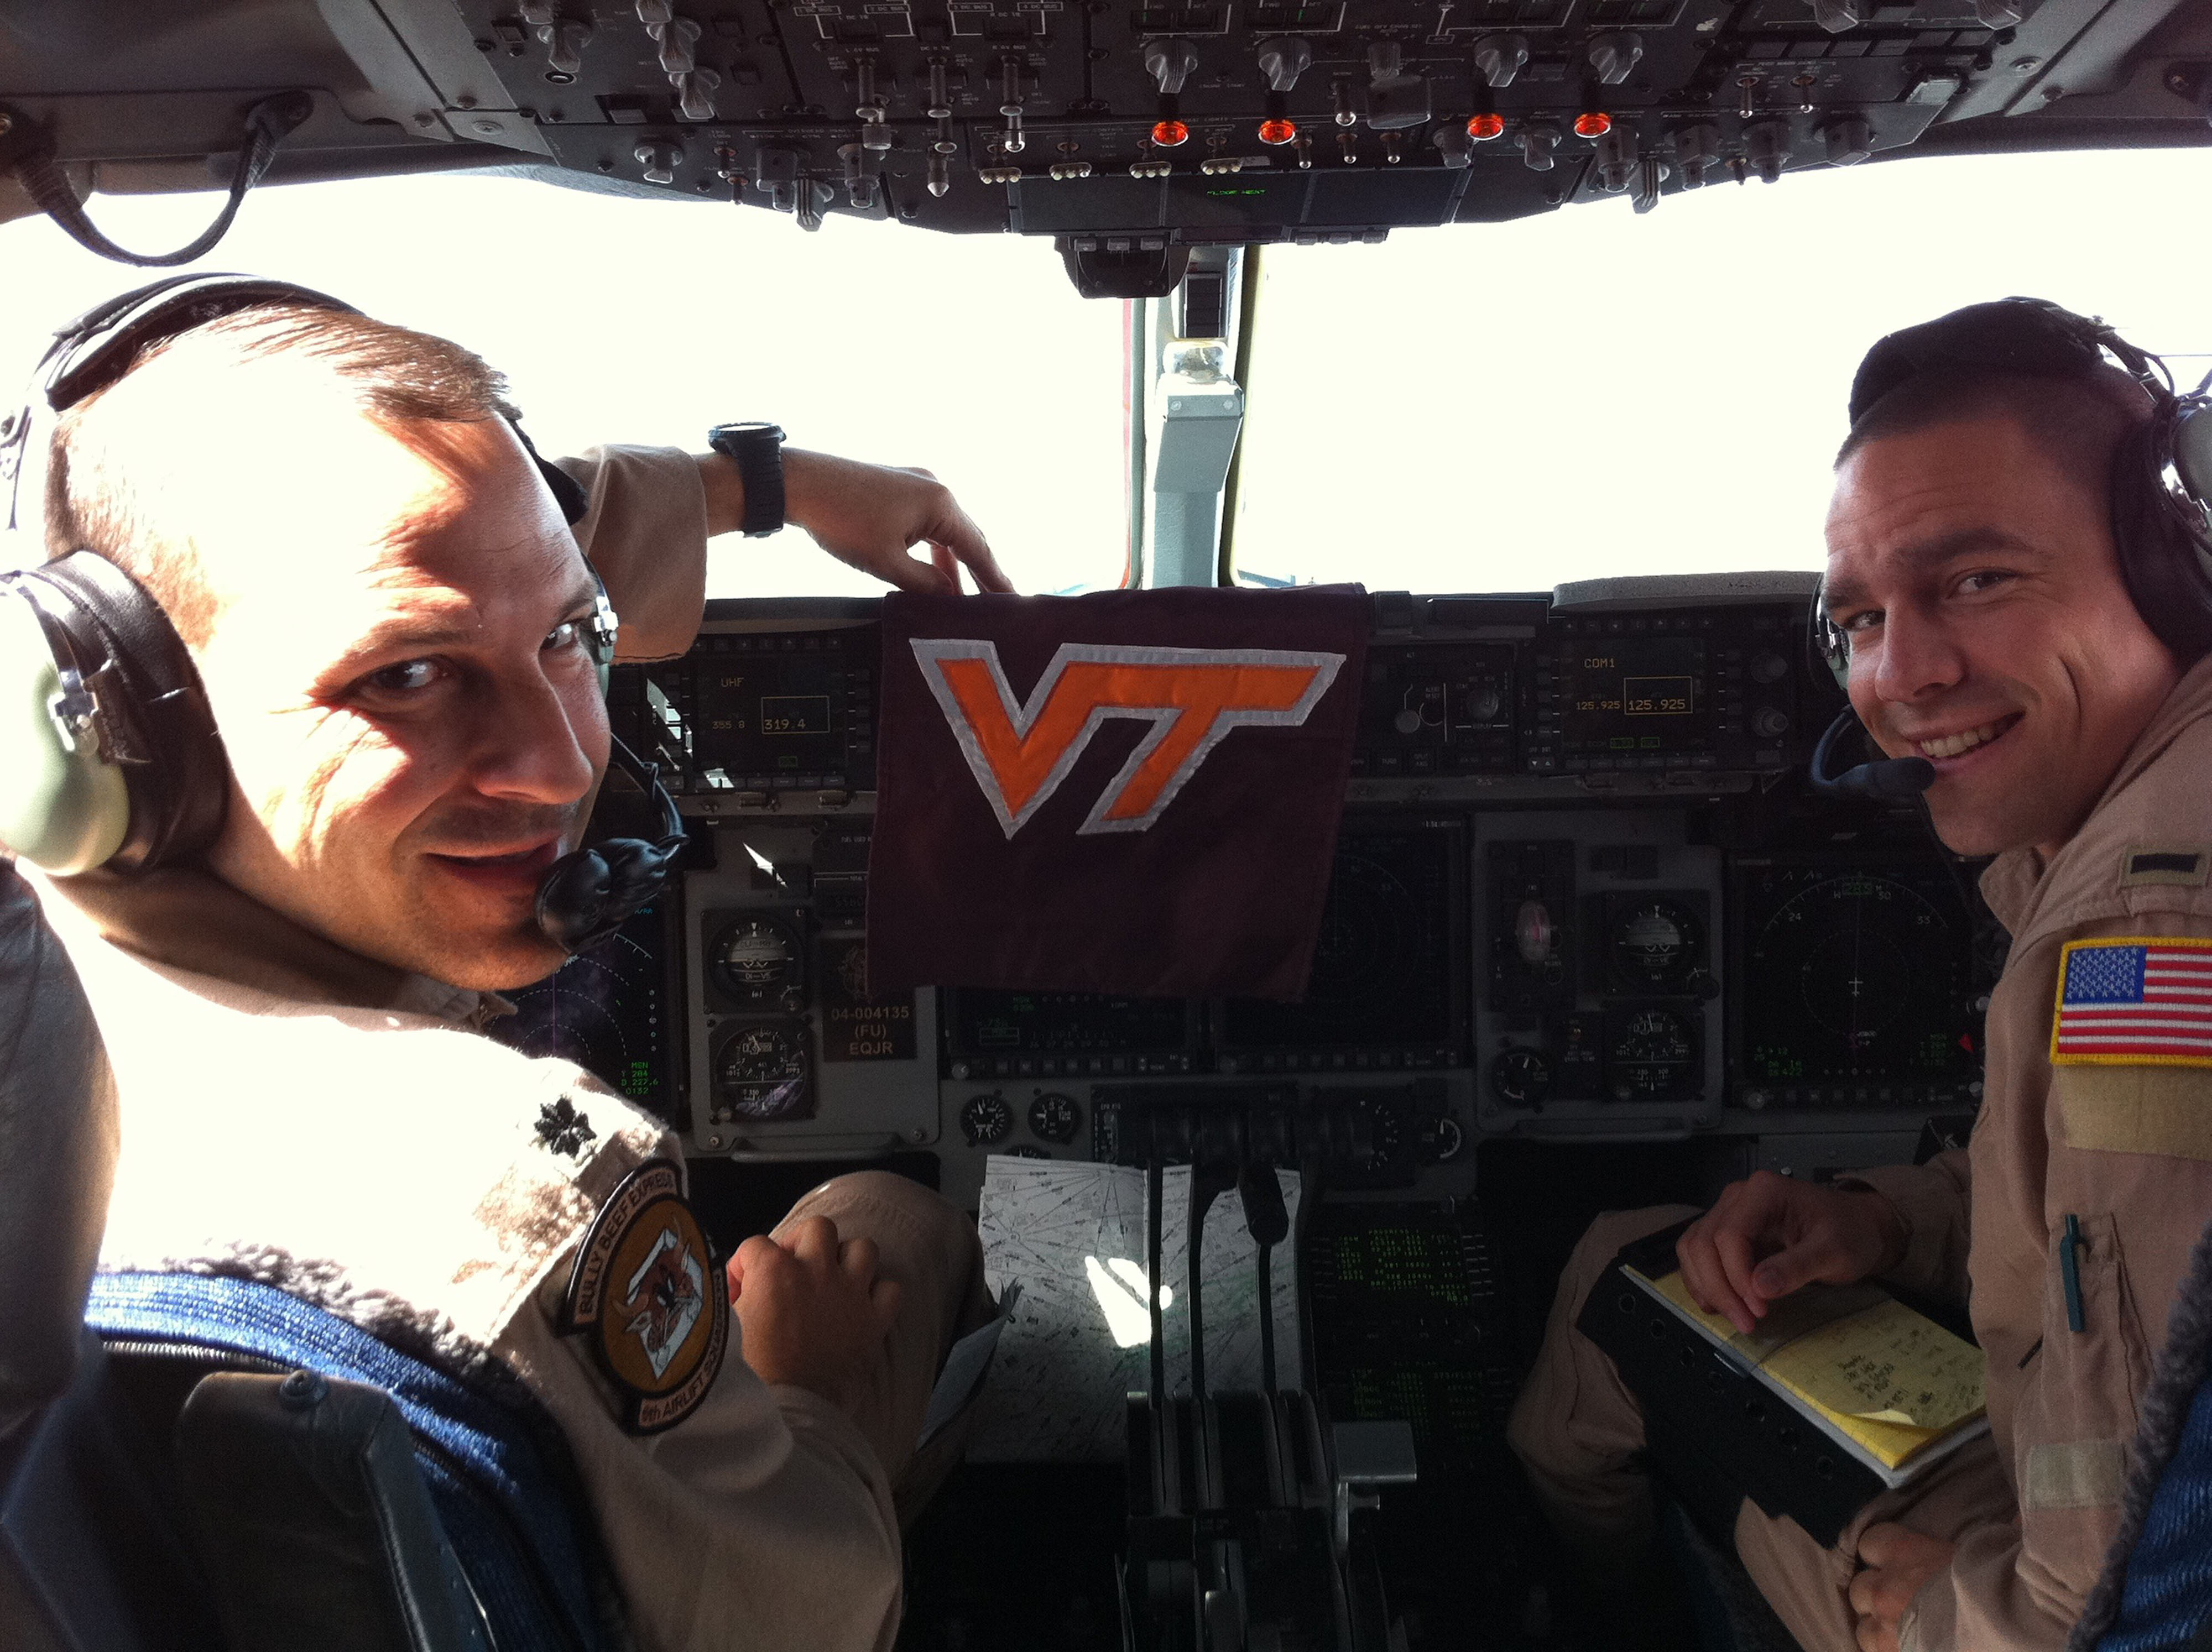 "Lt. Col. Doug Hall (left), U.S. Air Force, Virginia Tech Corps of Cadets Class of 1992 and 1st. Lt. Purvis ""PC"" Gaddis (right), U.S. Air Force, Virginia Tech Corps of Cadets Class of 2009 shown in early September returning from Europe, flying the C-17A Globemaster III that they will bring to Virginia Tech for the Arkansas State game"